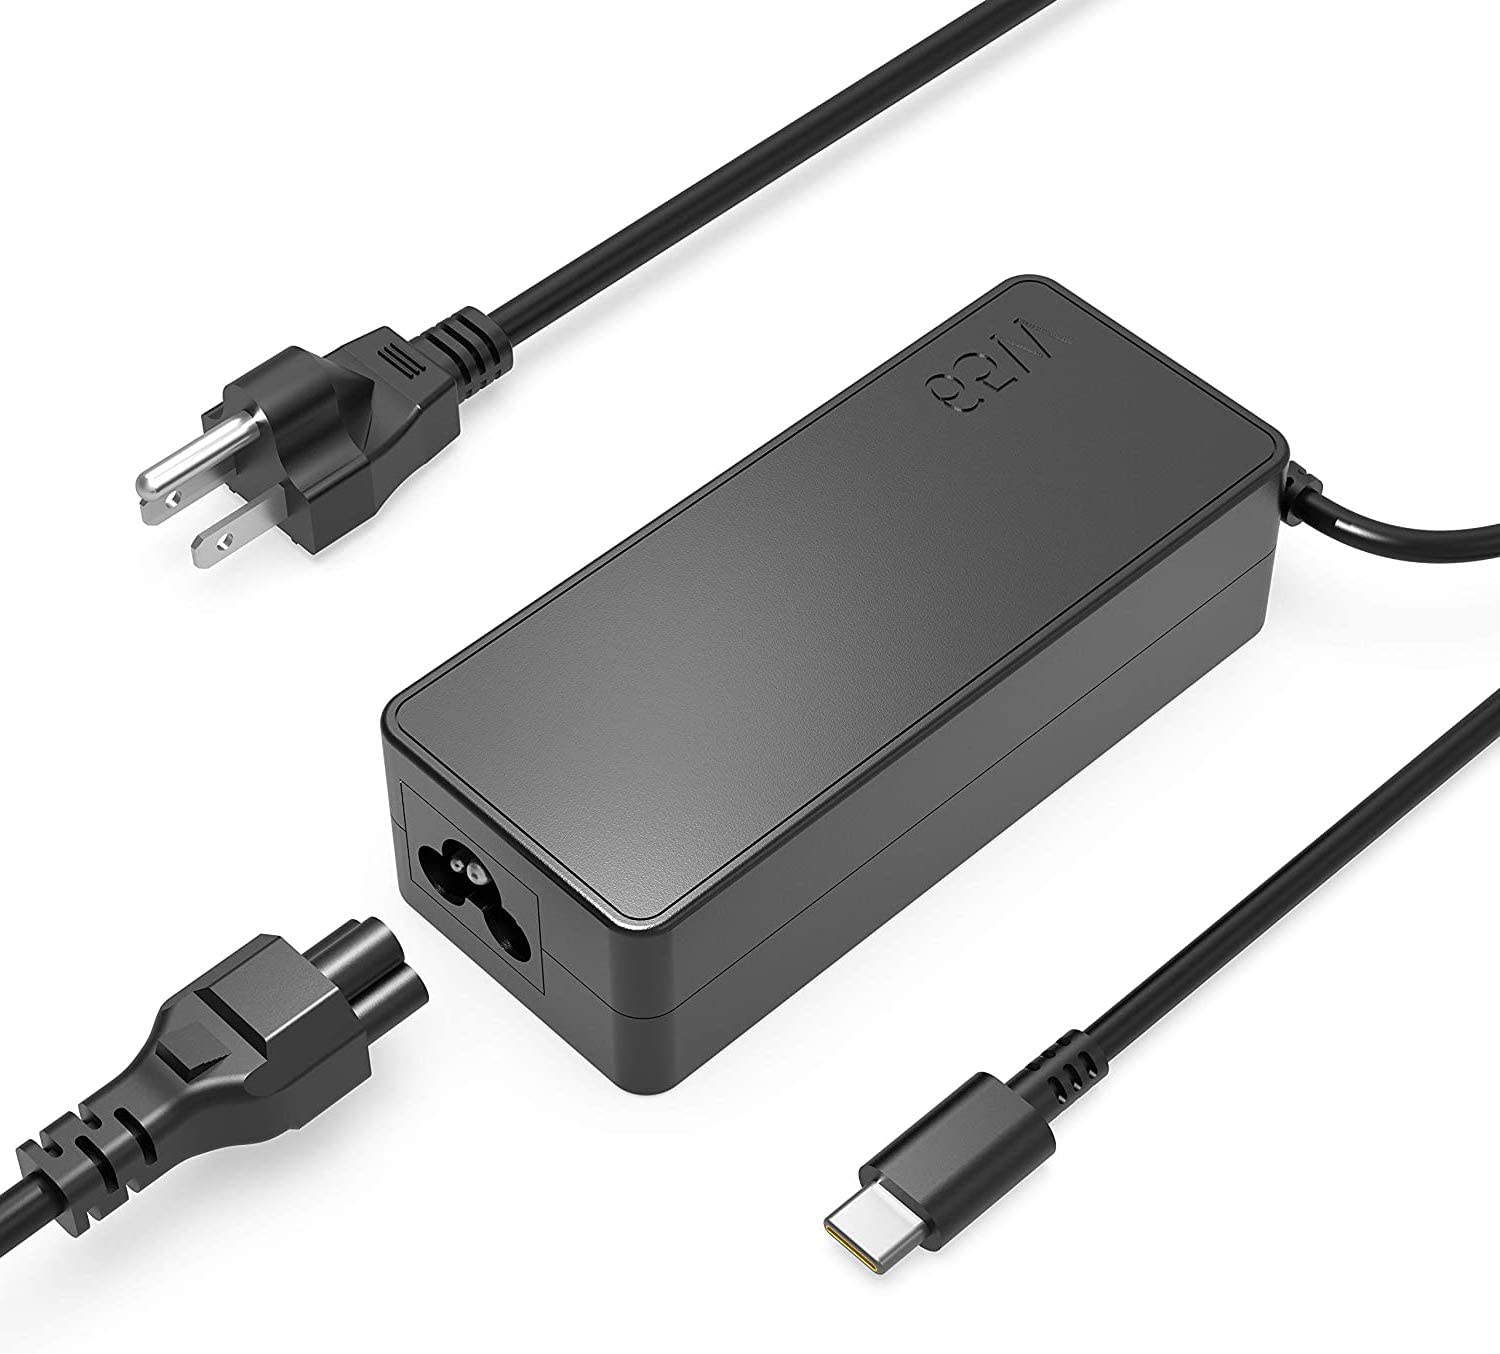 65W Type C USB Laptop Charger Fit for Dell Latitude 7410 7310 7210 9510 9410 5520 5420 5320 2in1 AC Power Adapter Supply Cord